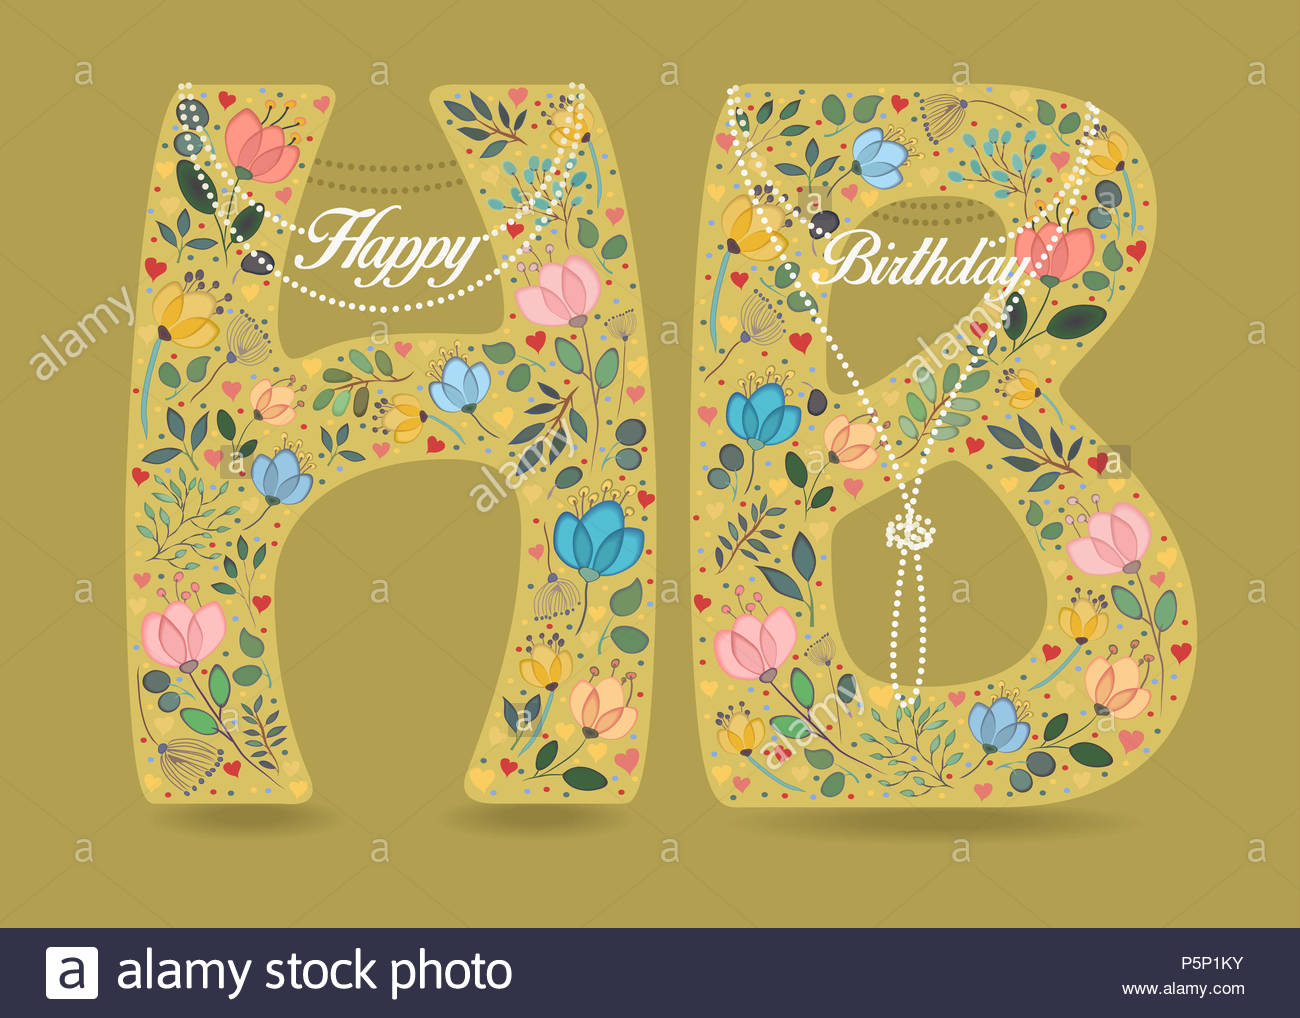 happy birthday yellow letters h and b with folk floral decor graceful watercolor flowers and hearts pearl necklaces with texts as pendants yellow